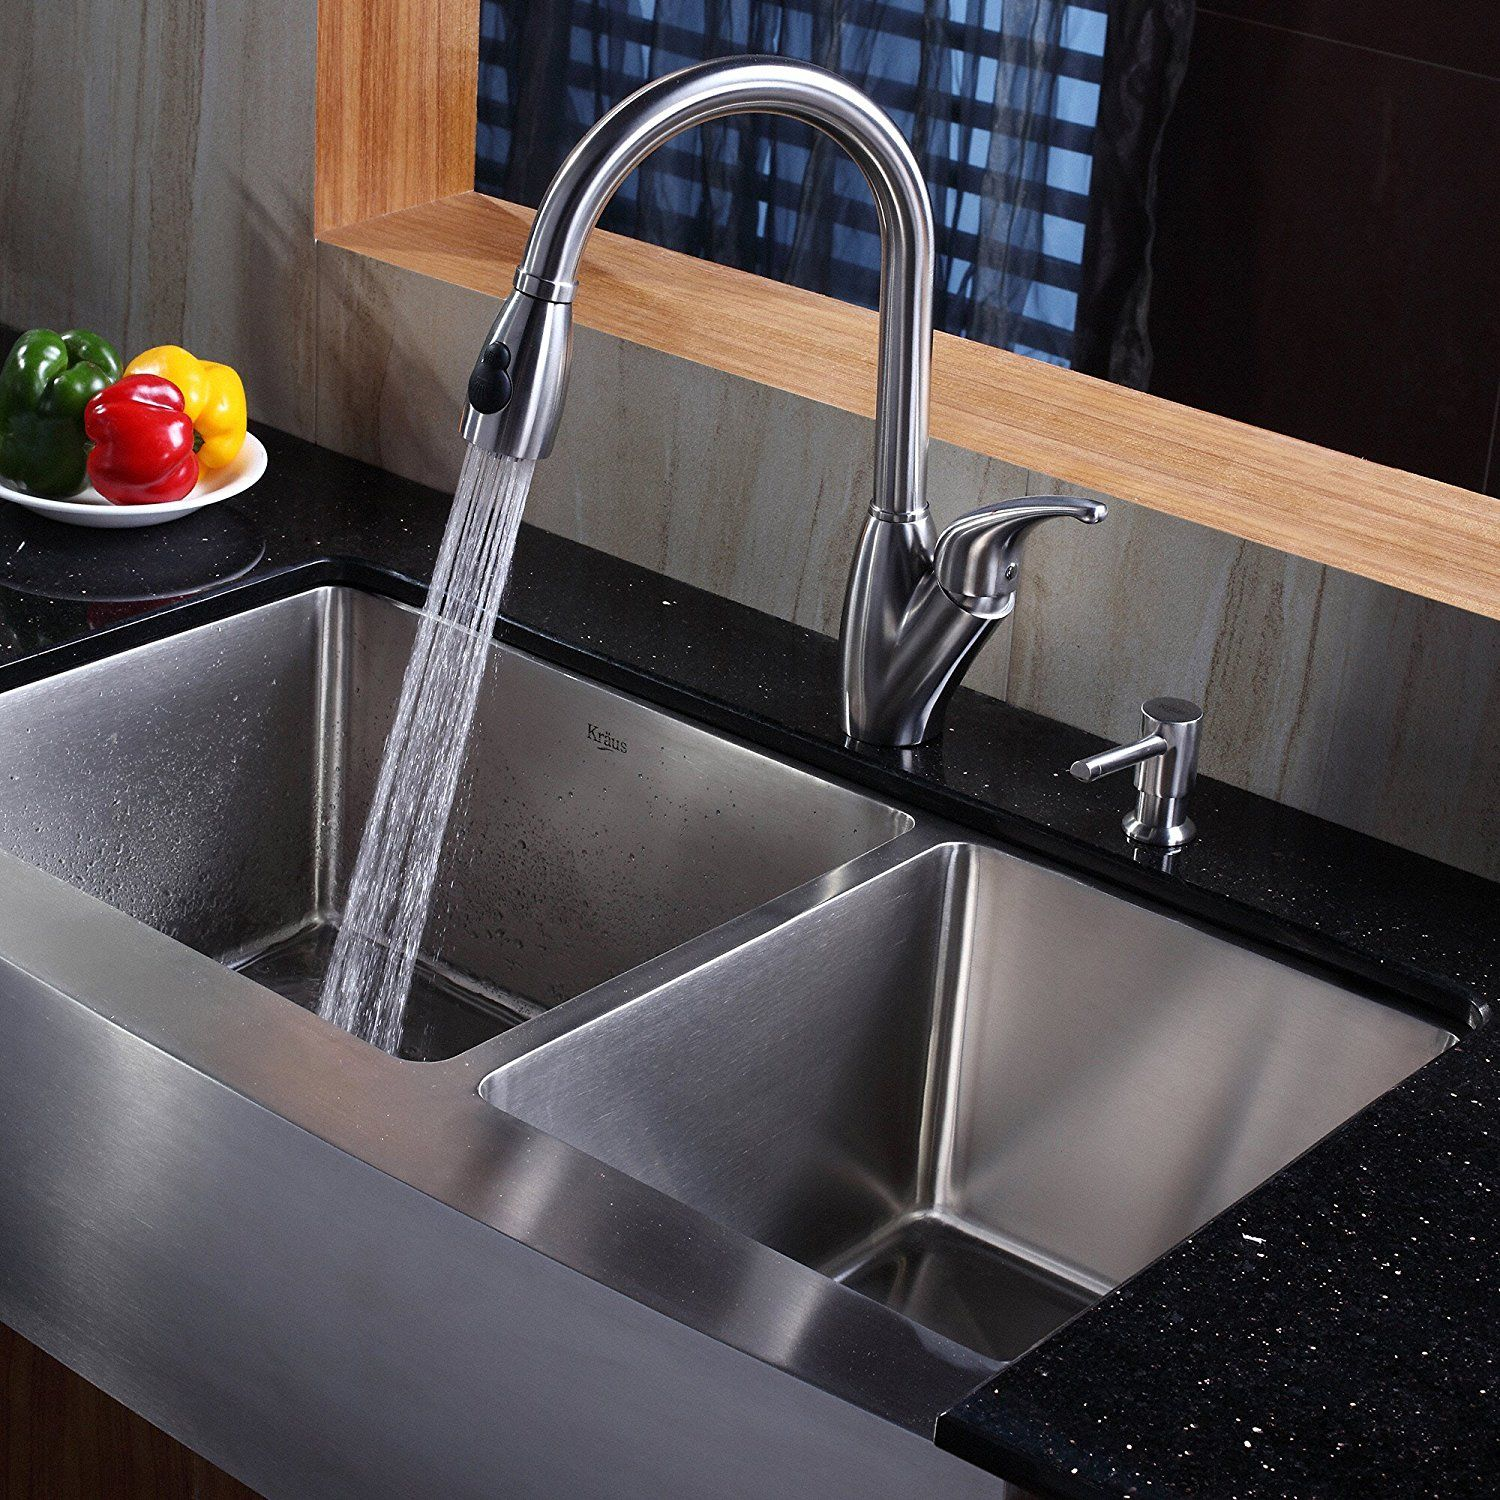 Superieur Best Stainless Steel Sinks 2017   Uncle Paulu0027s Top 5 Choices